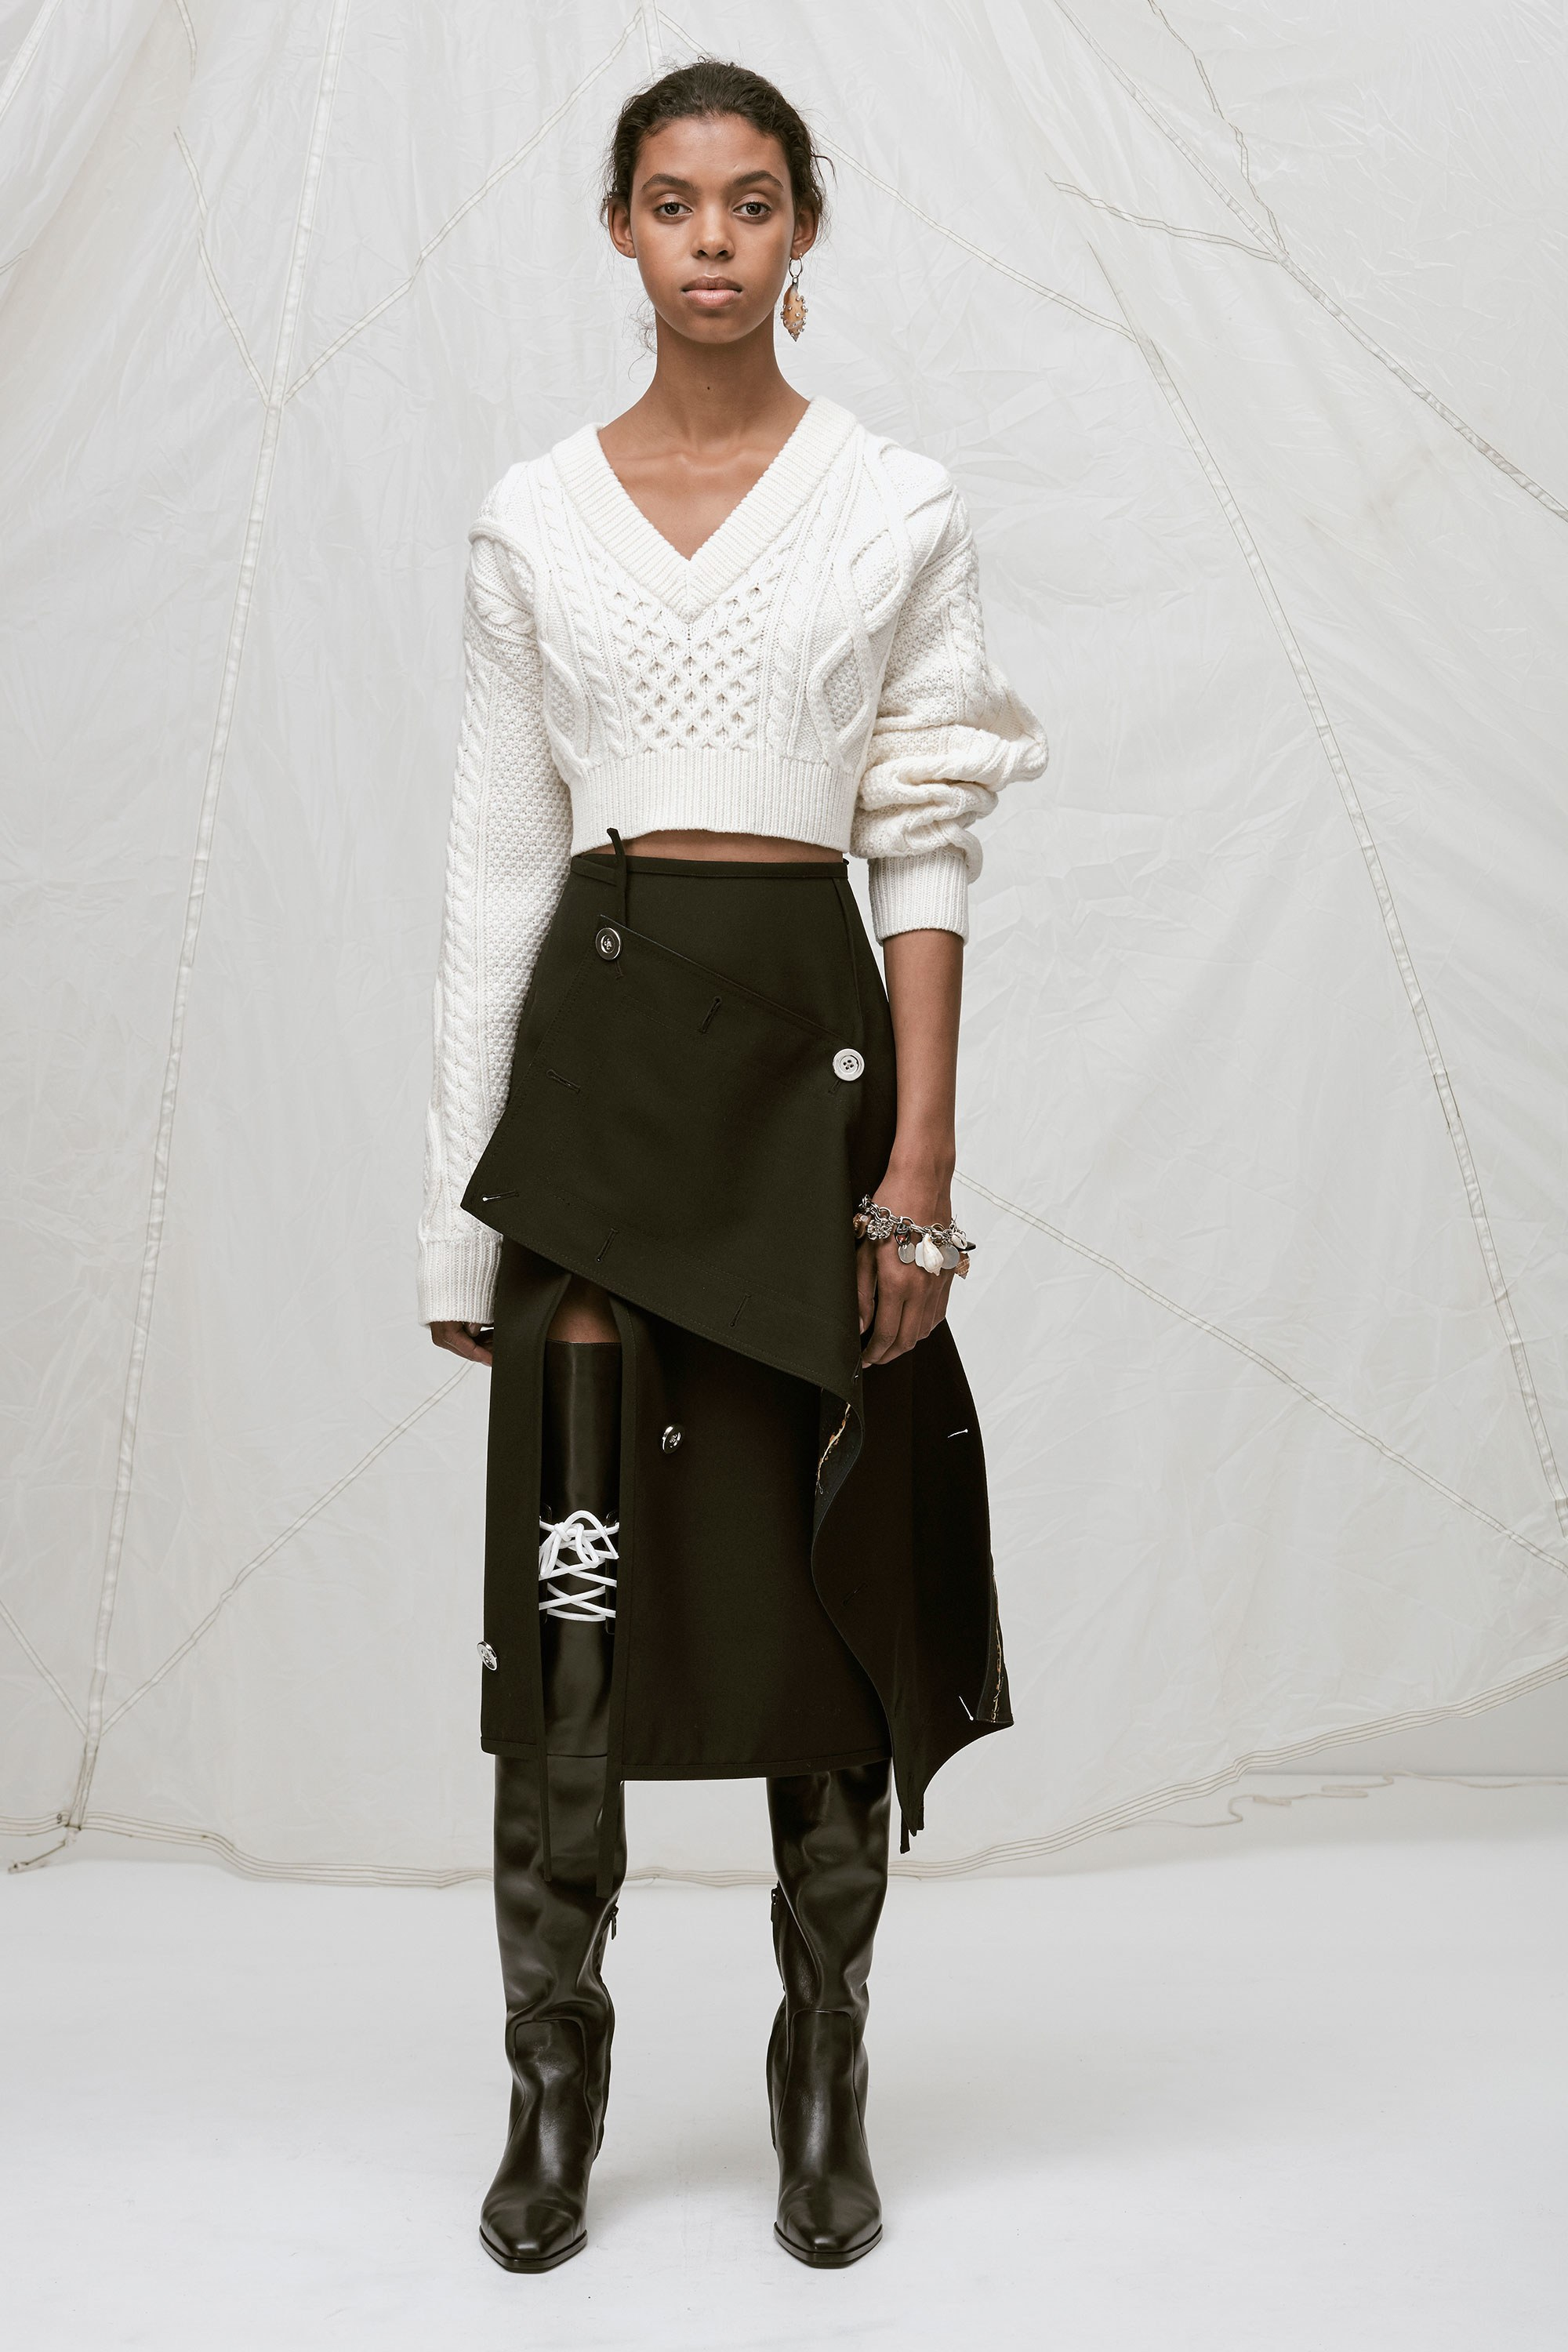 Winter Favorites 2018 - 3.1 Phillip Lim Pre-Fall 2018